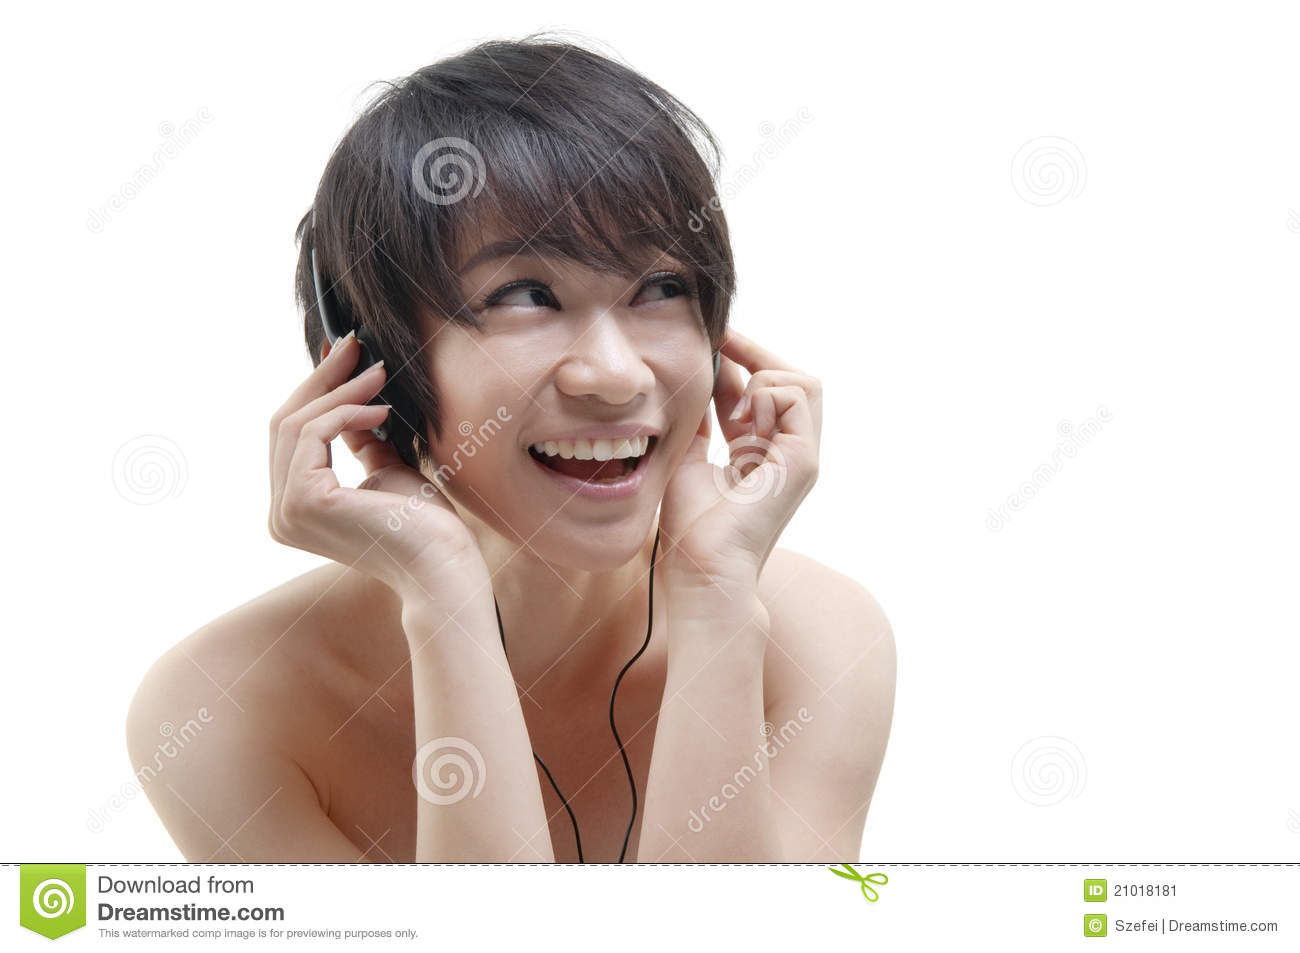 essays listening music Essay 13 my favorite music there are many kinds of music, such as pop music, r&b,  i enjoy listening to piano music.